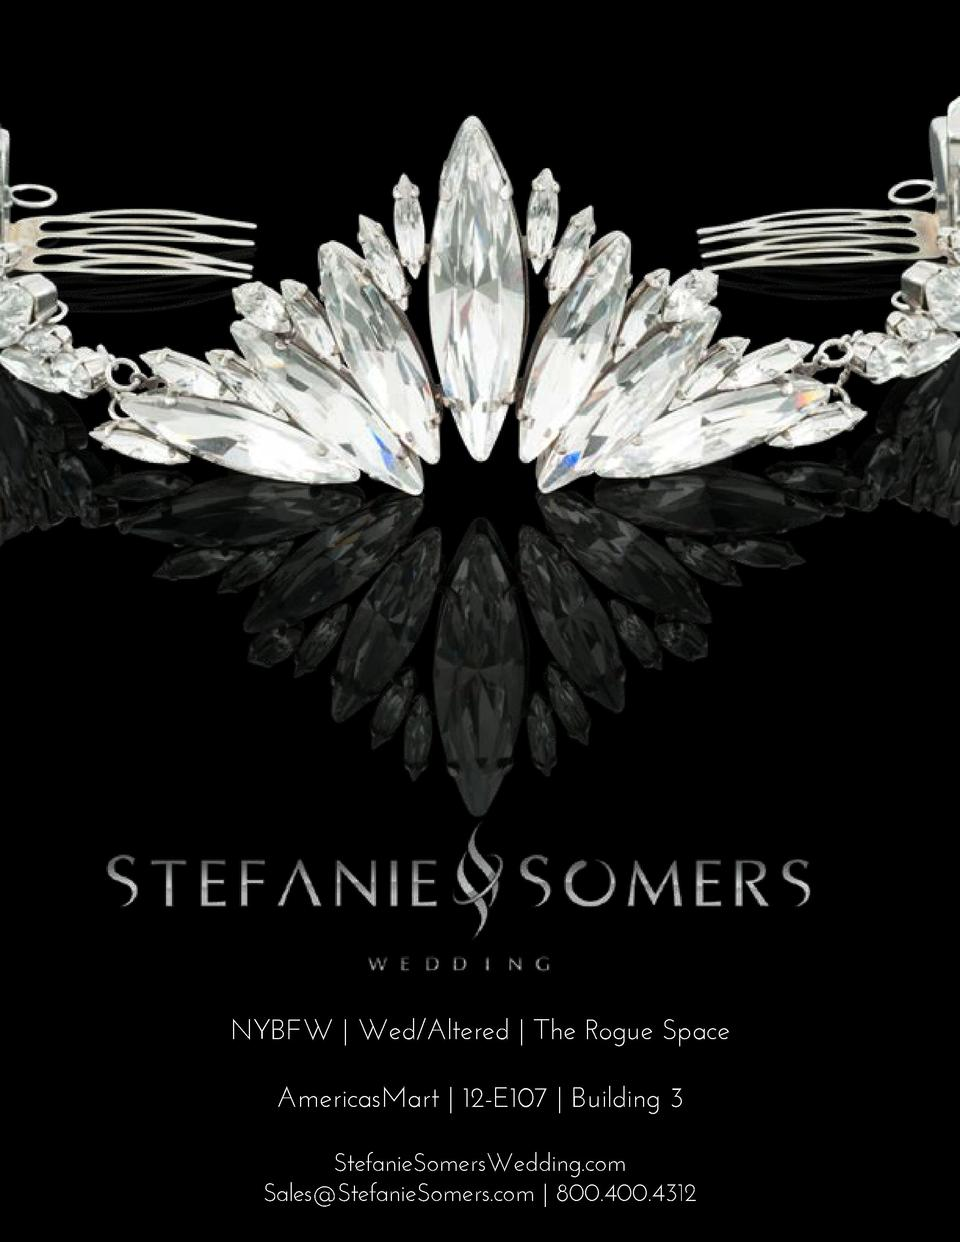 NYBFW   Wed Altered   The Rogue Space AmericasMart   12-E107   Building 3 StefanieSomersWedding.com Sales StefanieSomers.c...